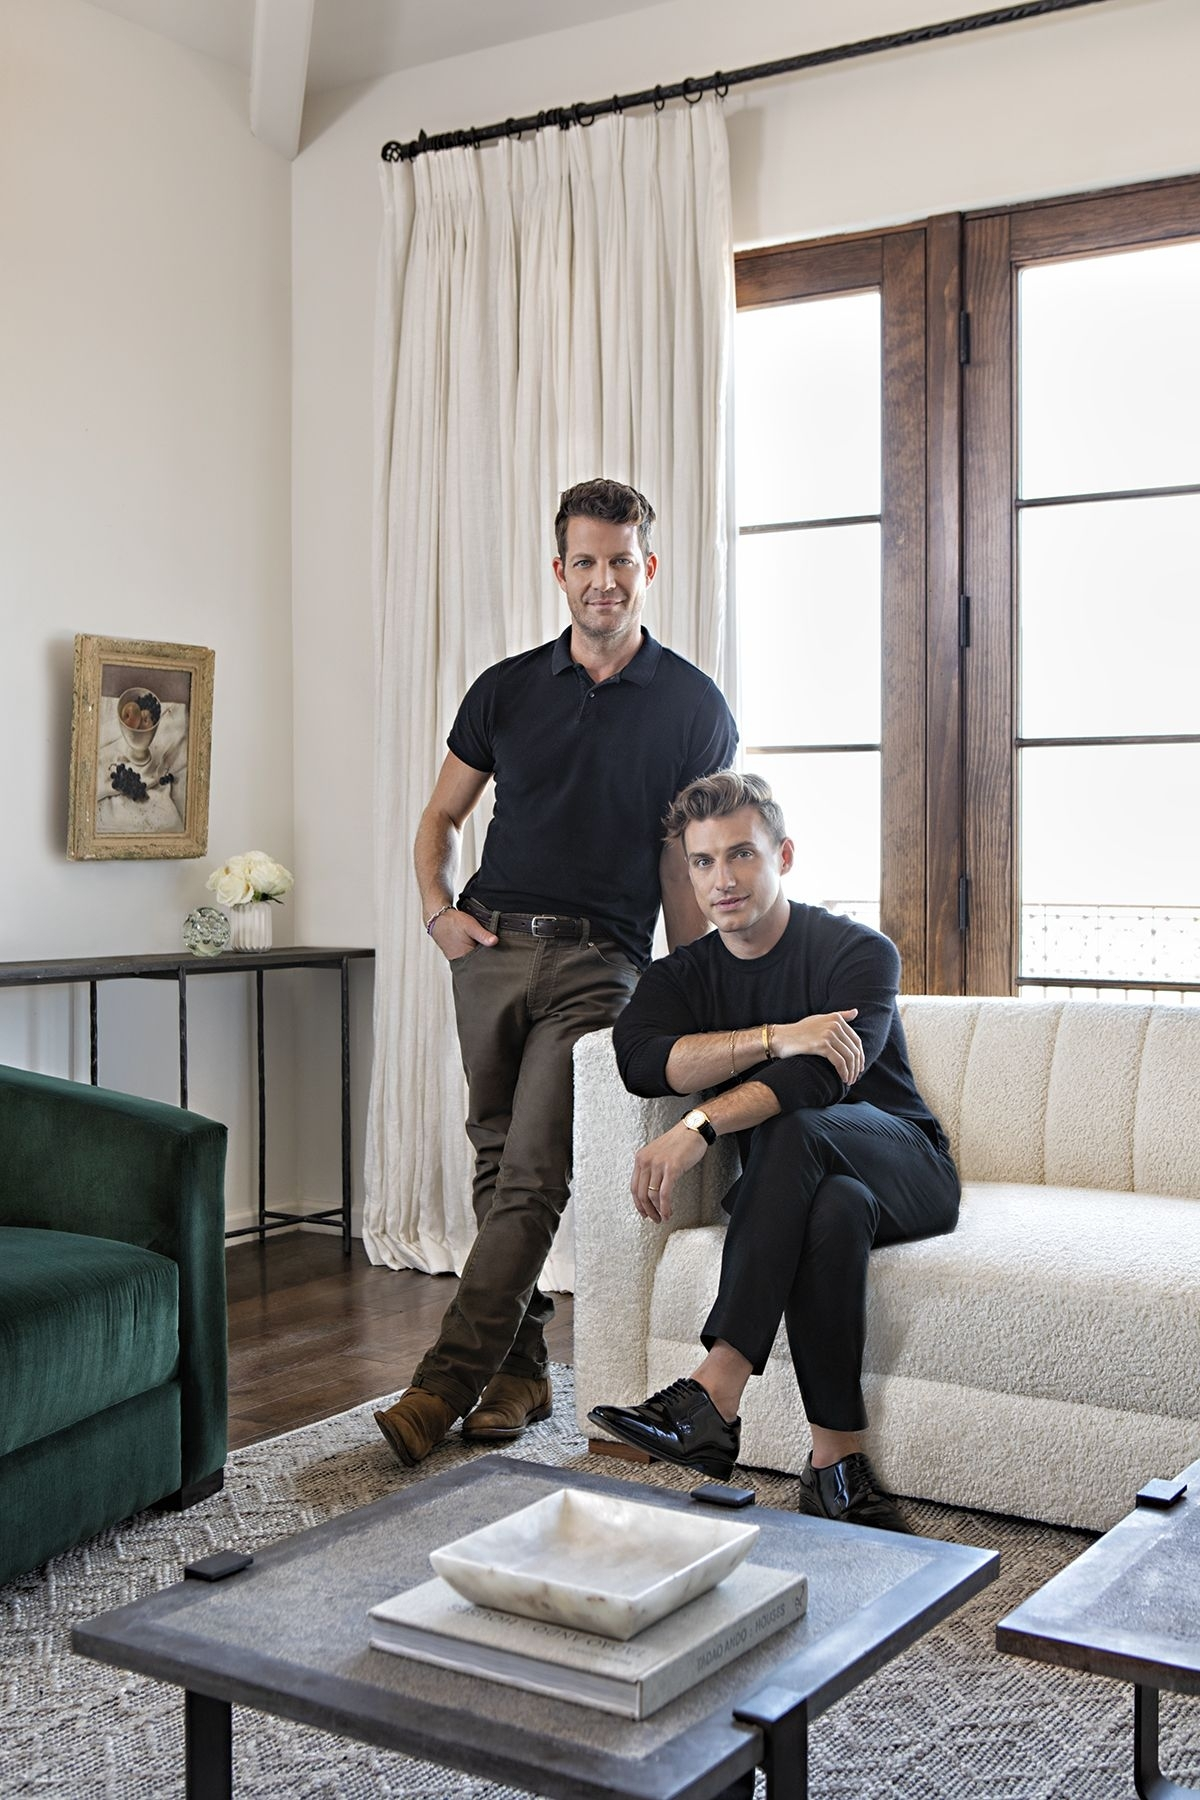 Nate Berkus & Jeremiah Brent's Newest Affordable Collection | Rue Pertaining To Whitley 3 Piece Sectionals By Nate Berkus And Jeremiah Brent (Image 8 of 25)